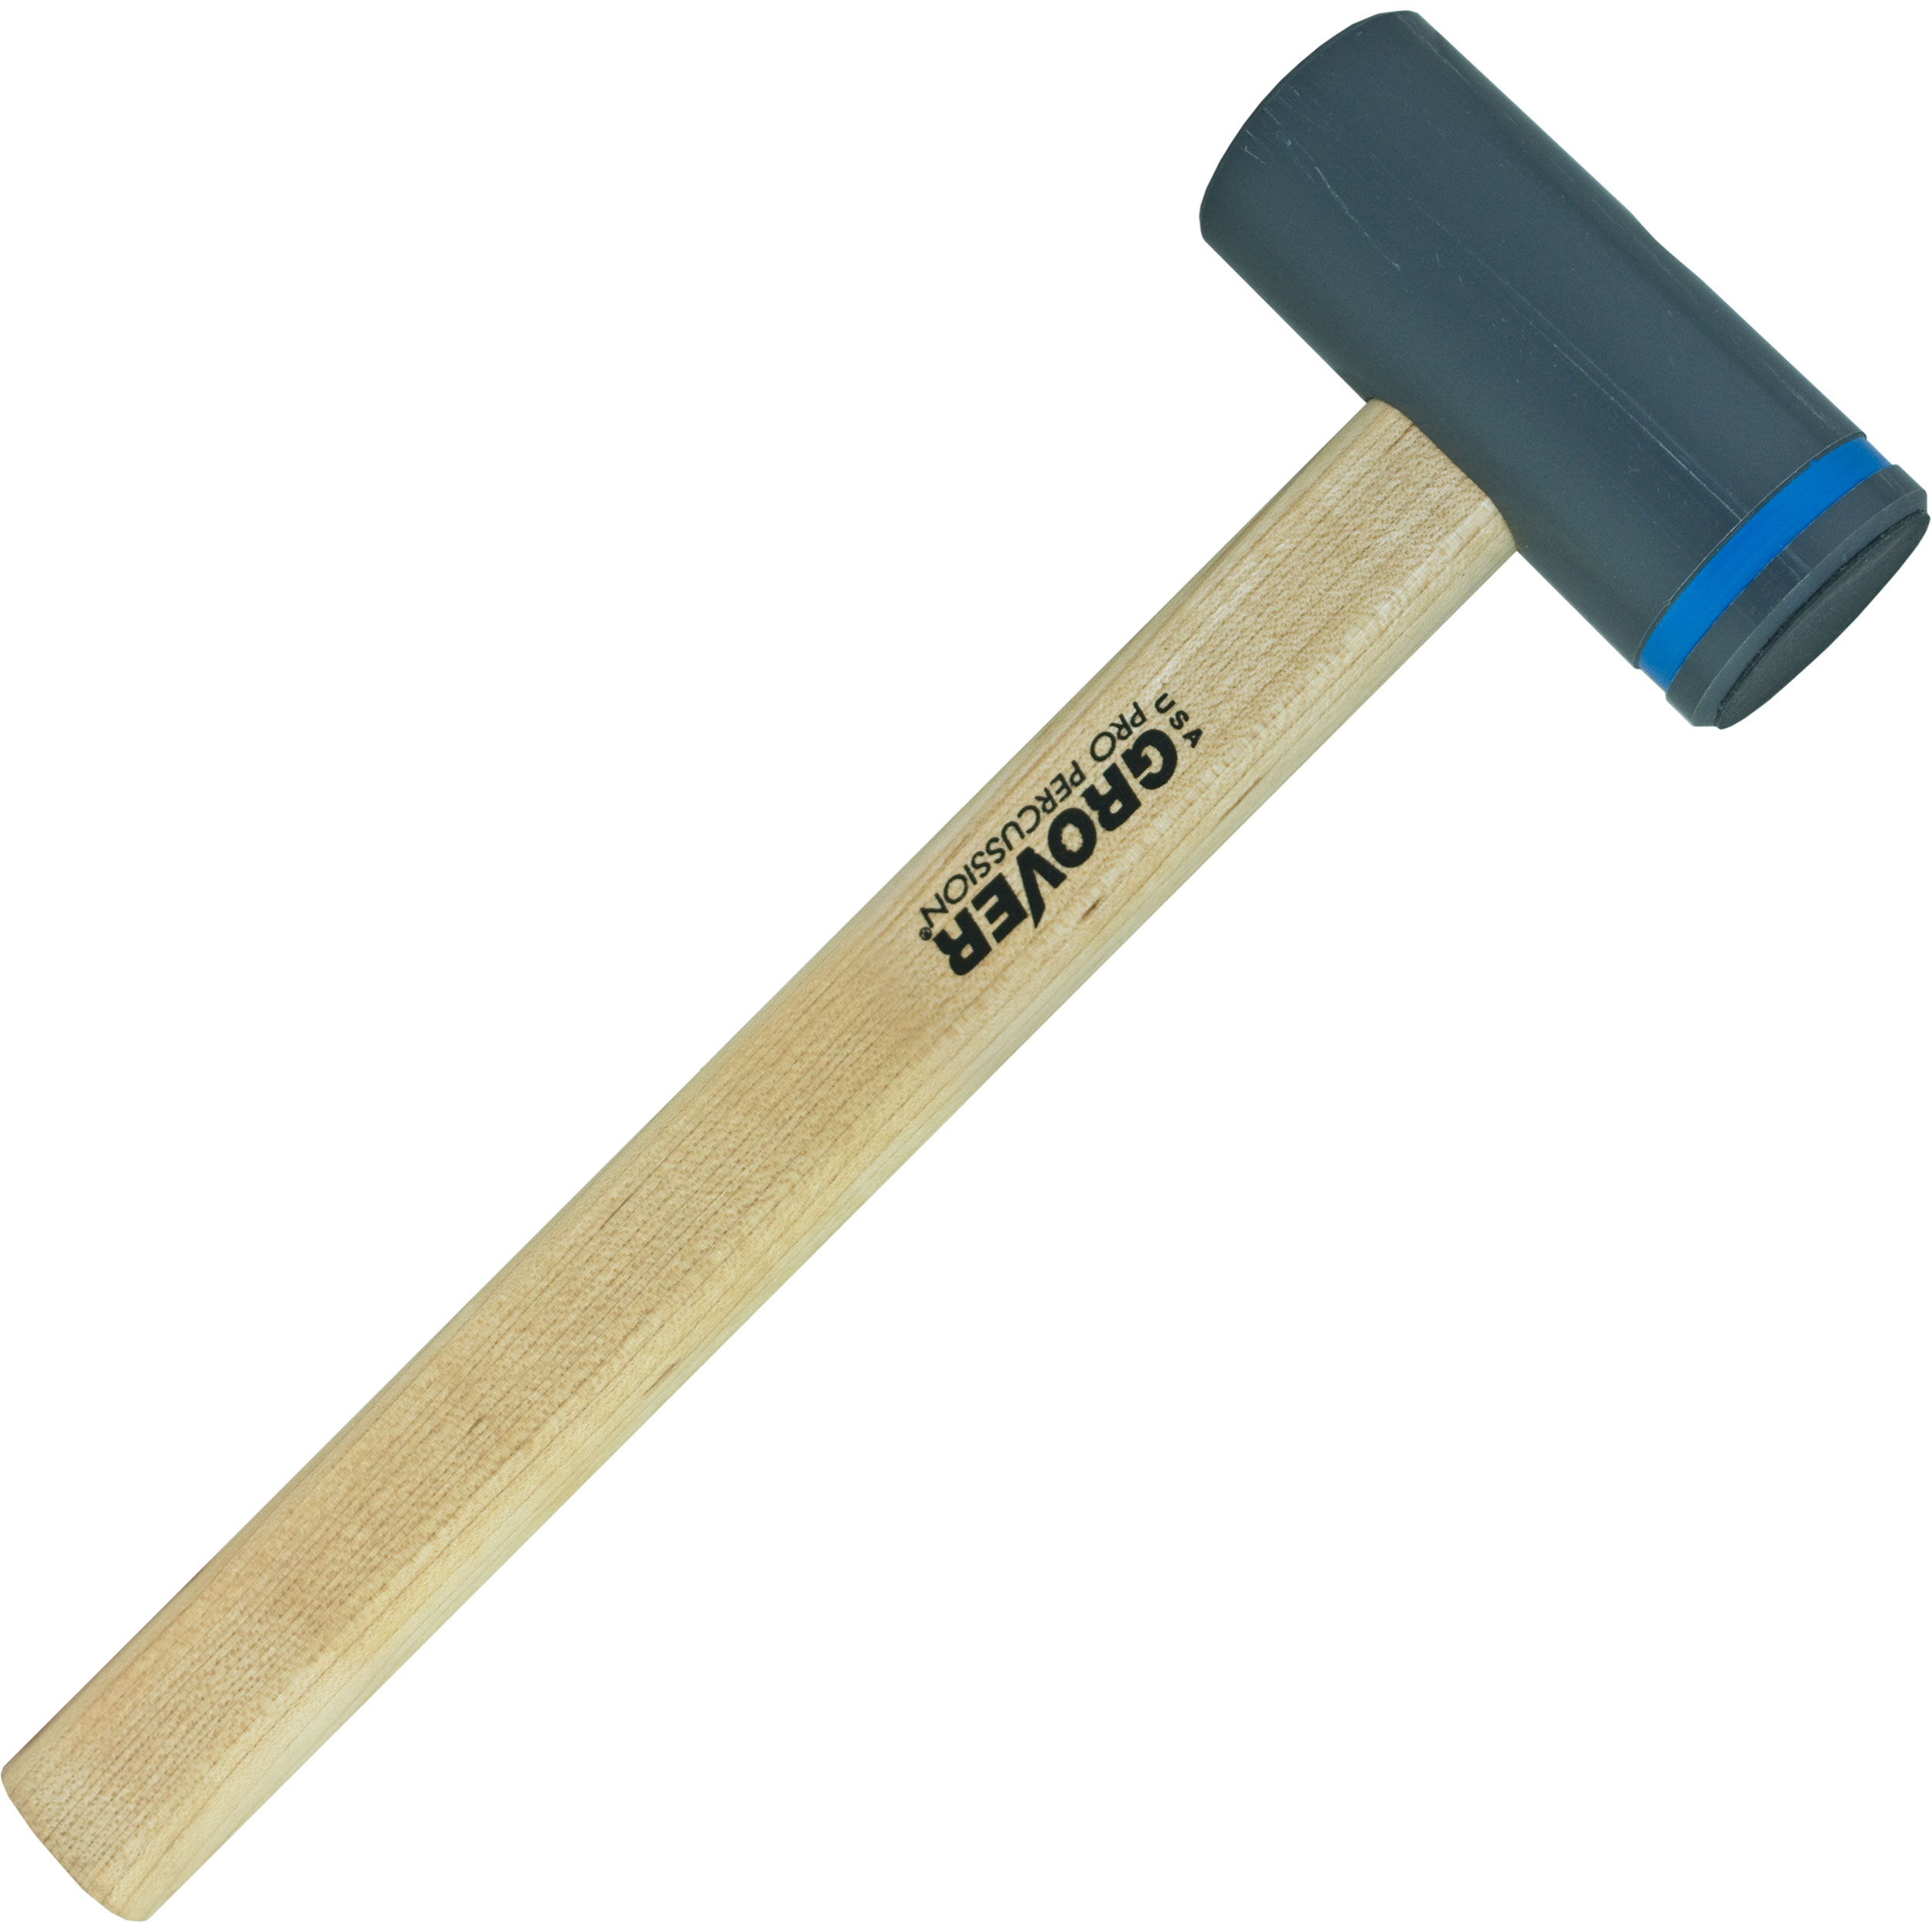 "Grover Pro 1.75"" Large Head Chime Mallet"